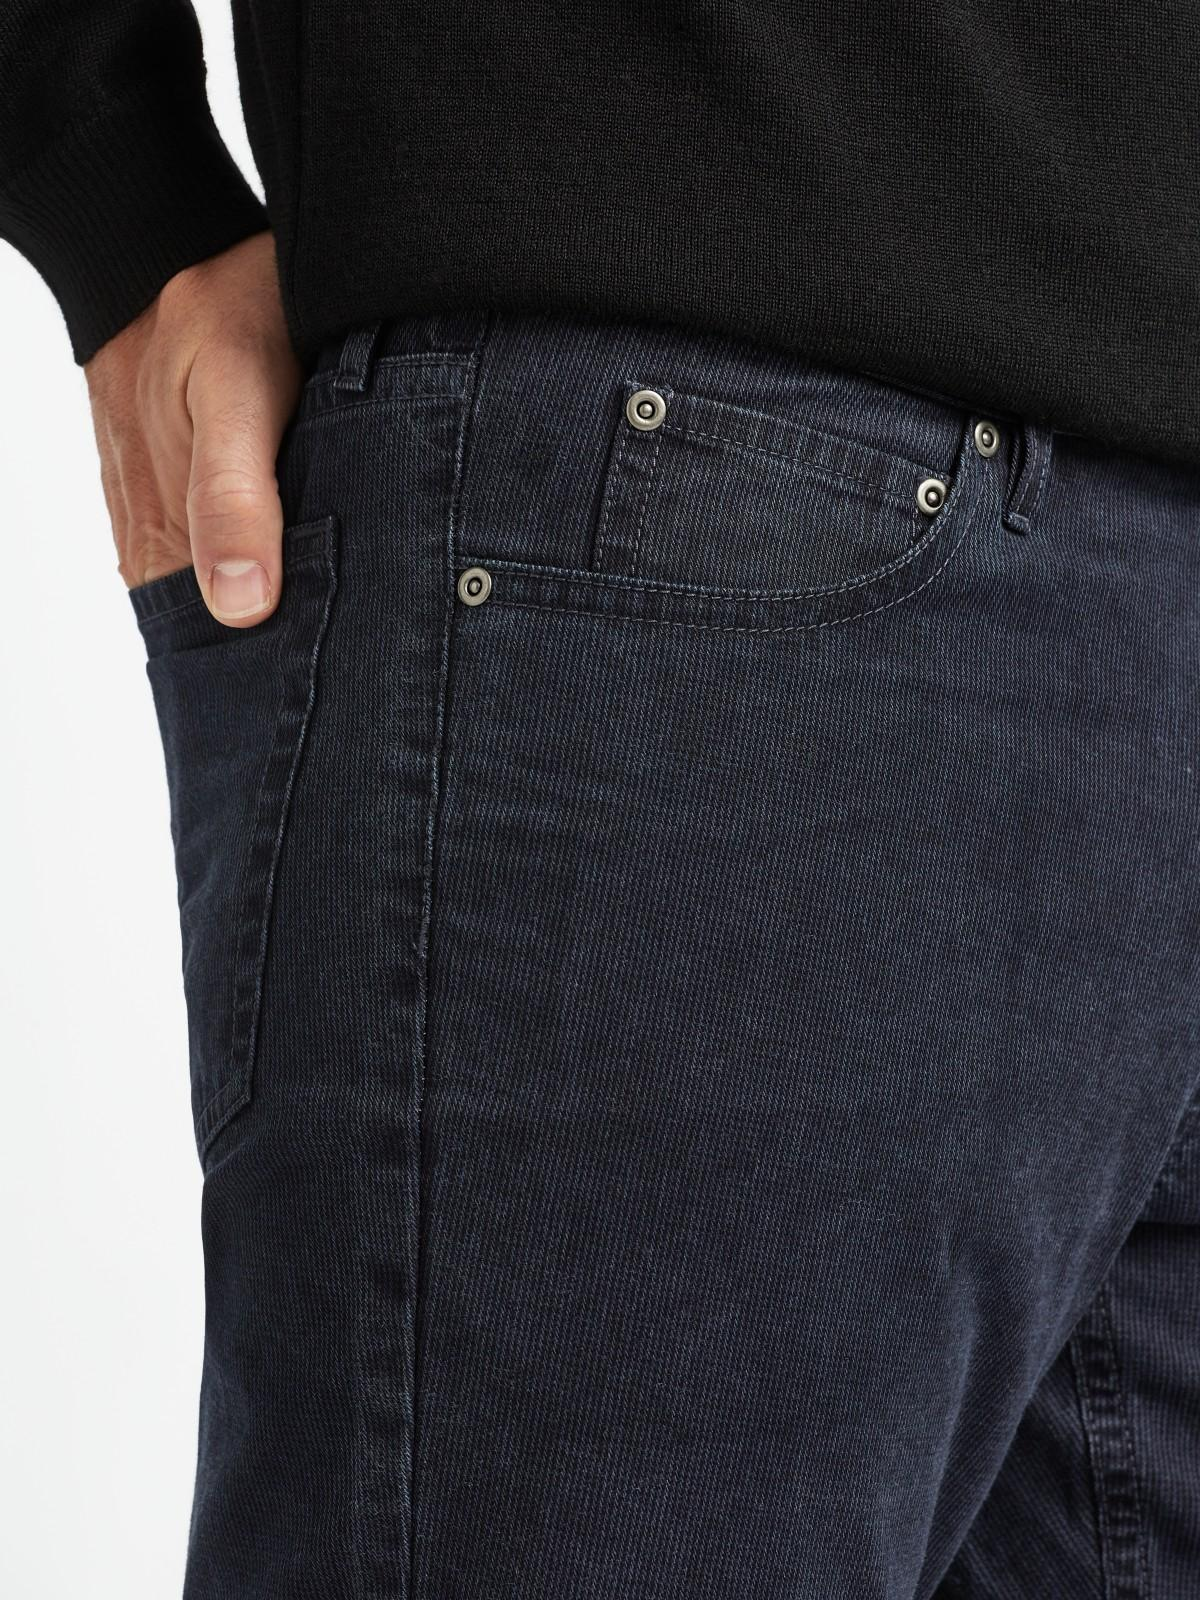 John Lewis Cotton Headland Washed 5 Pocket Trousers in Navy (Blue) for Men